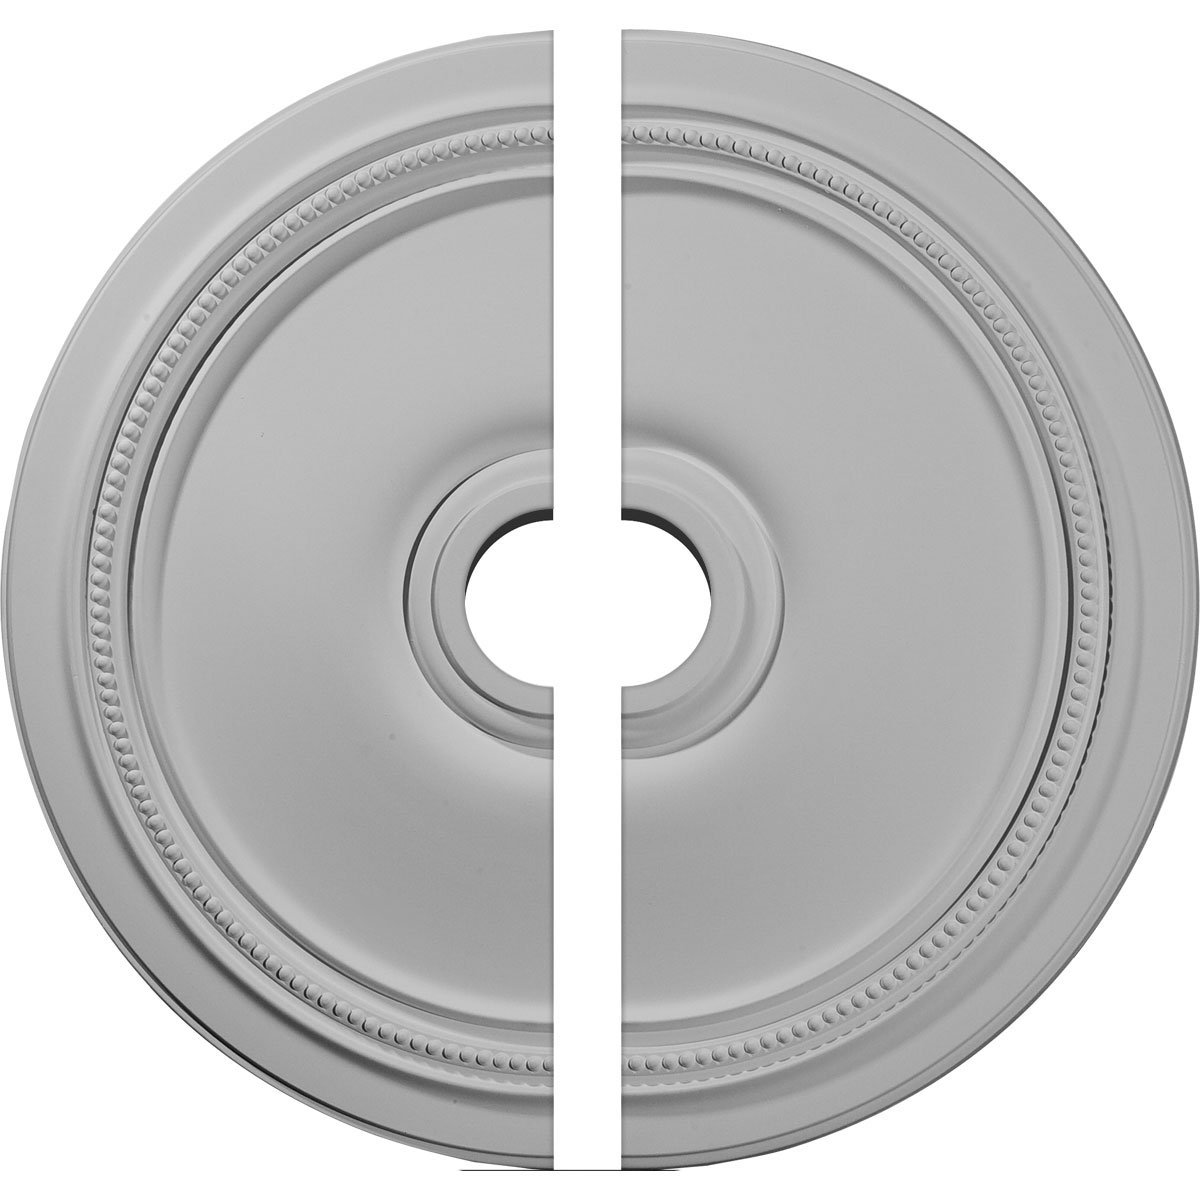 Ekena Millwork CM24DI2 24'' OD x 3 5/8'' ID x 1 P Diane Ceiling Medallion, Two Piece (Fits Canopies up to 6 1/4''), Factory Primed White